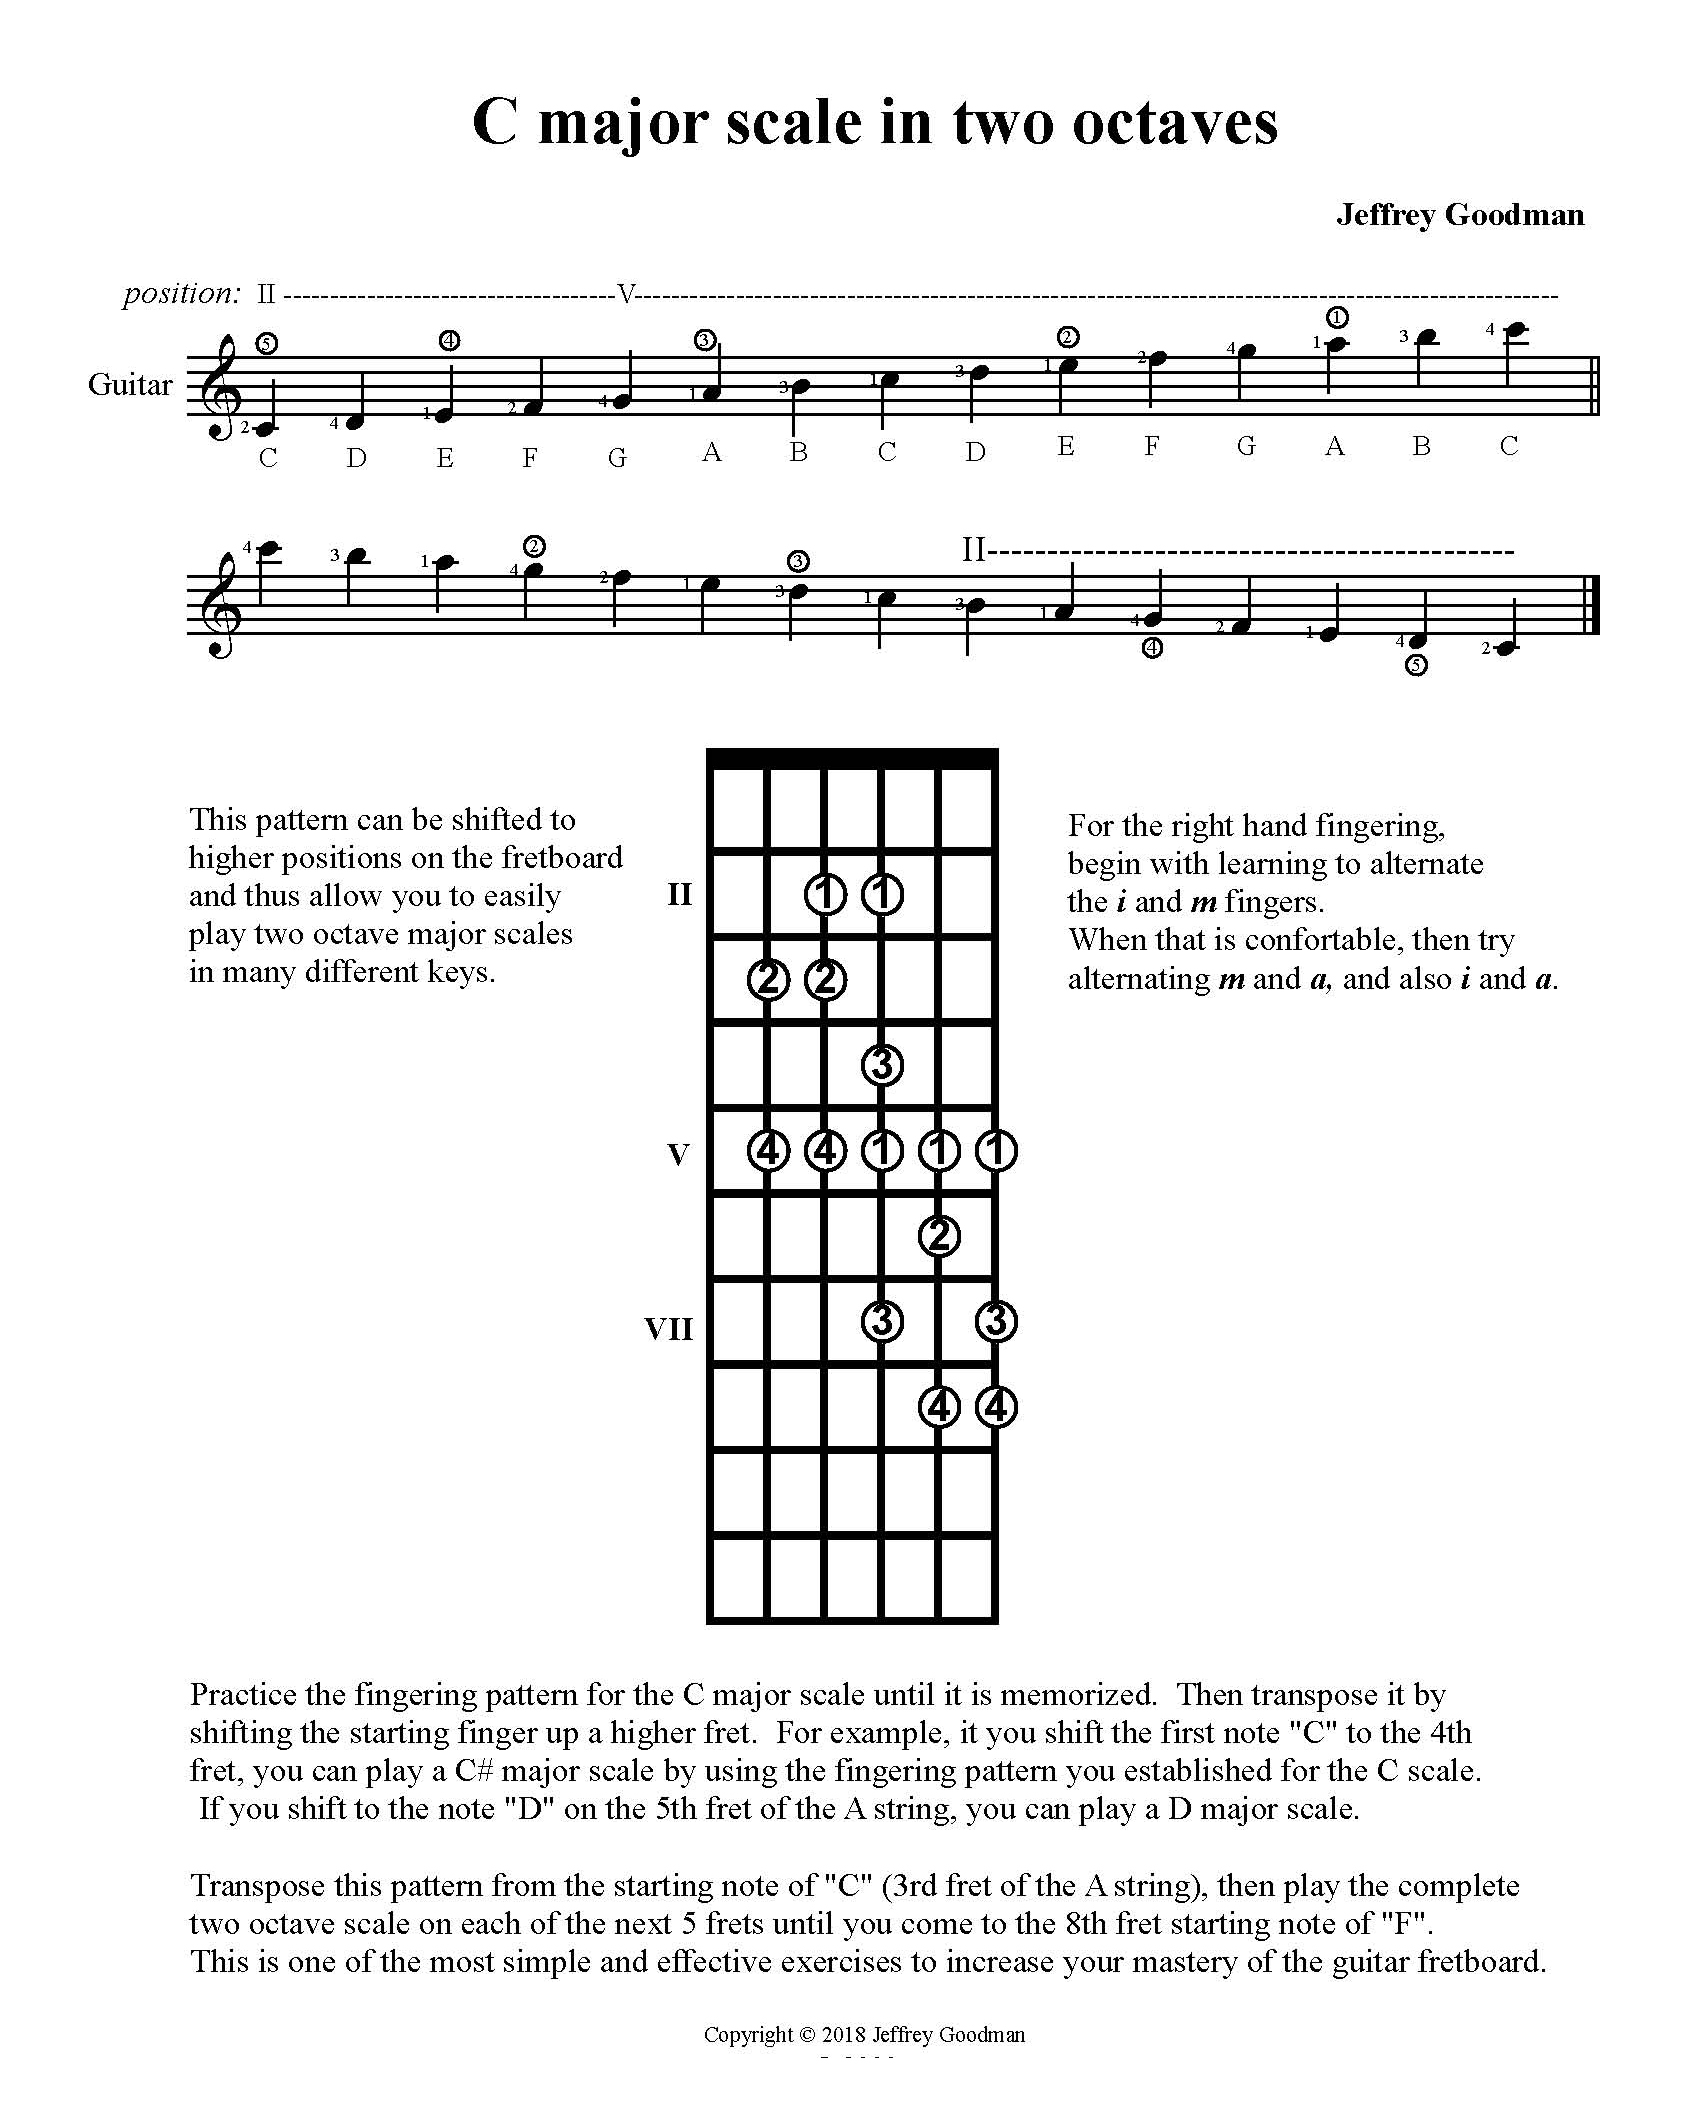 C major scale in two octaves with fretboard.jpg